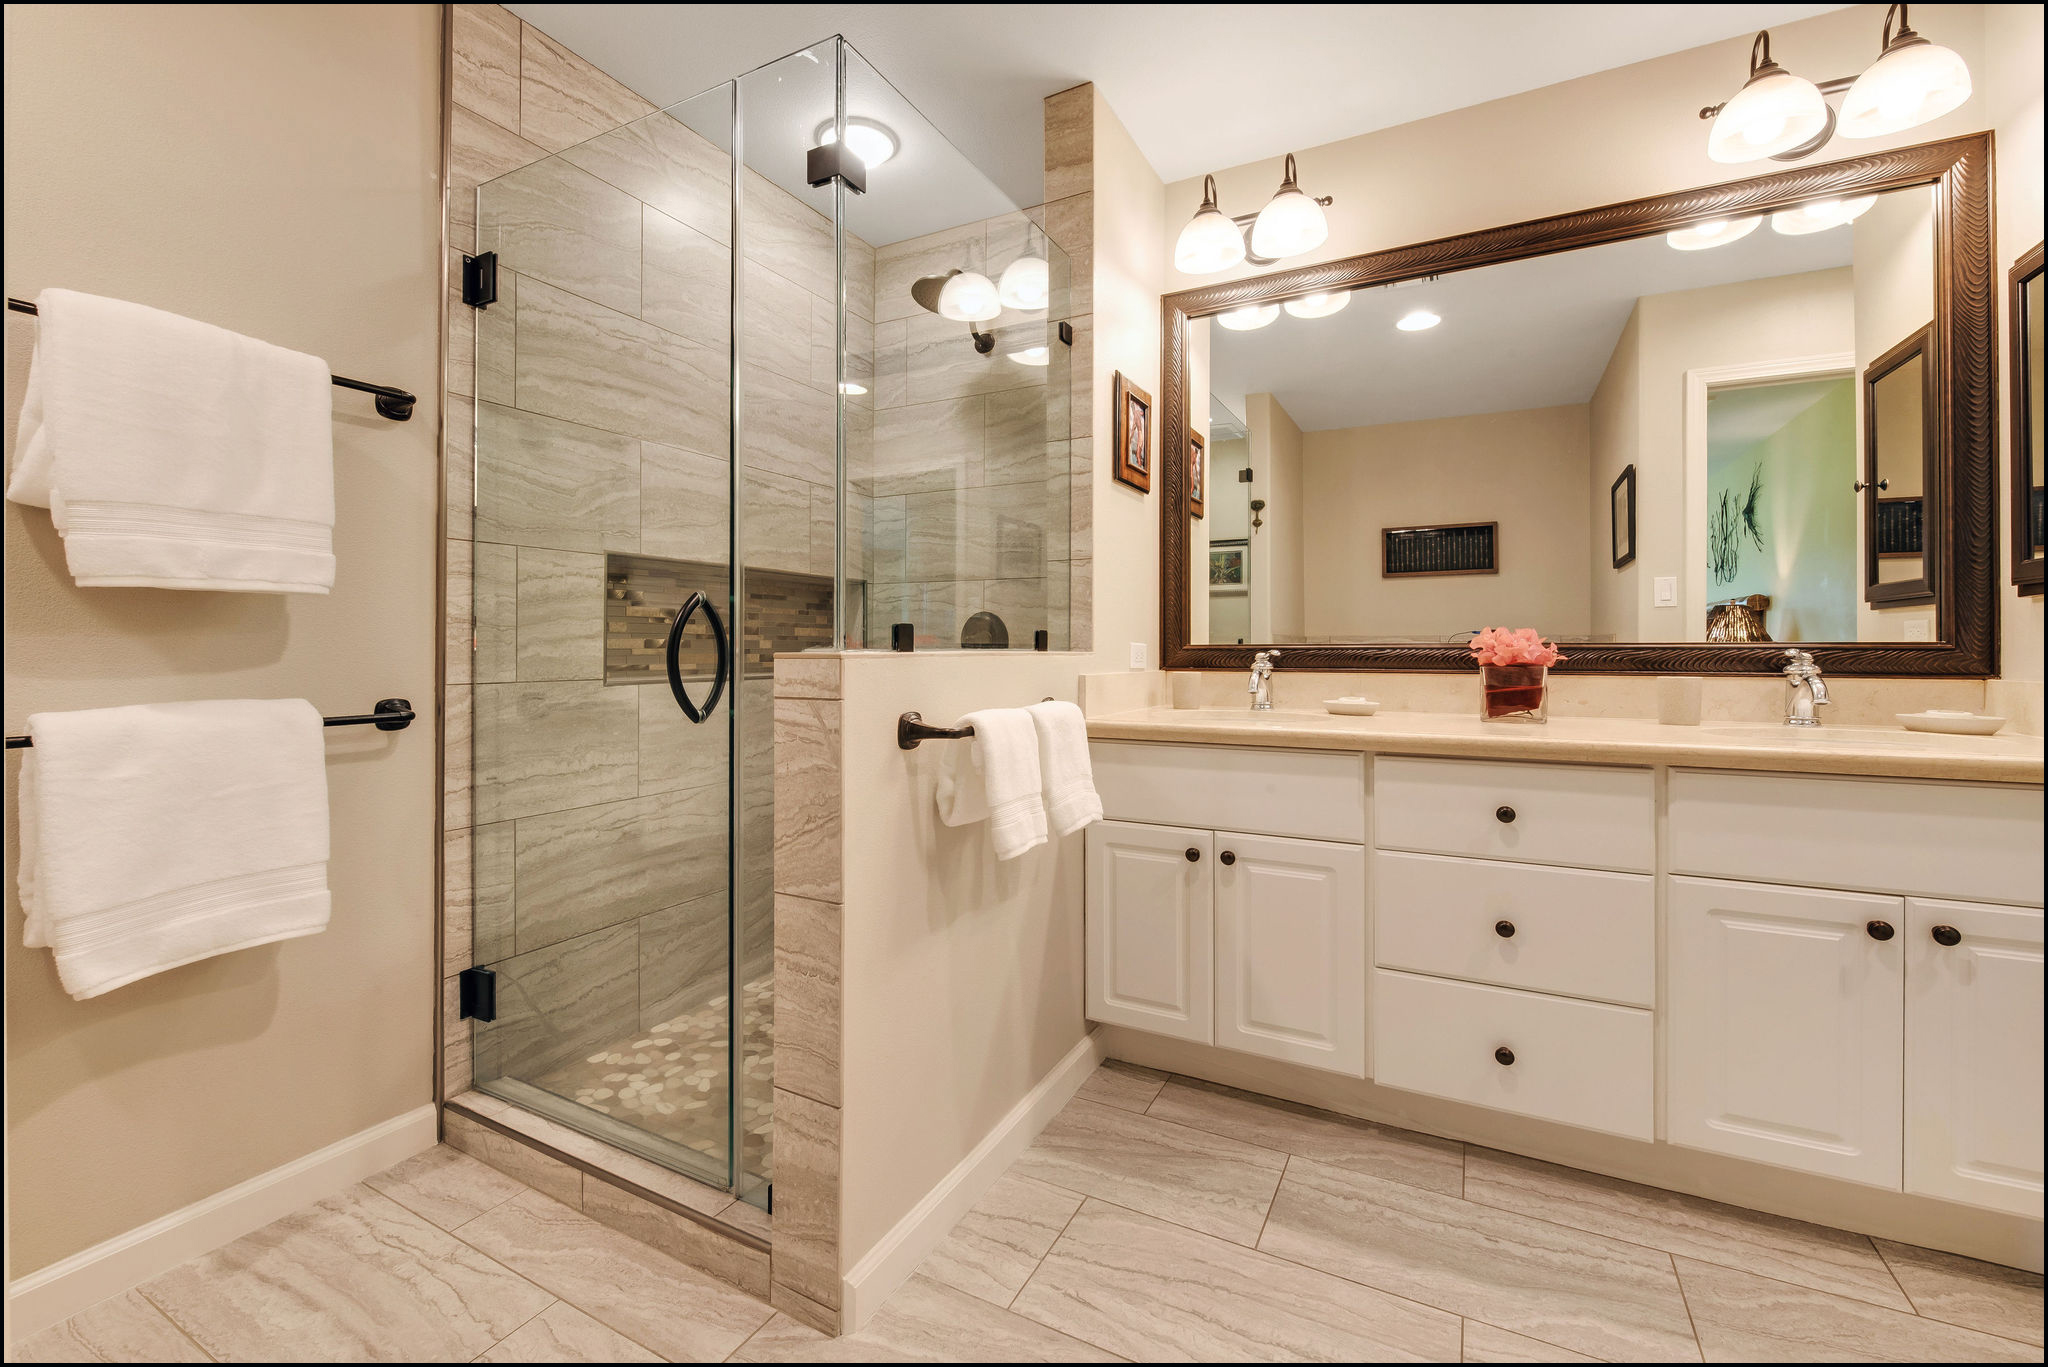 Beautiful master bathroom with tiled shower